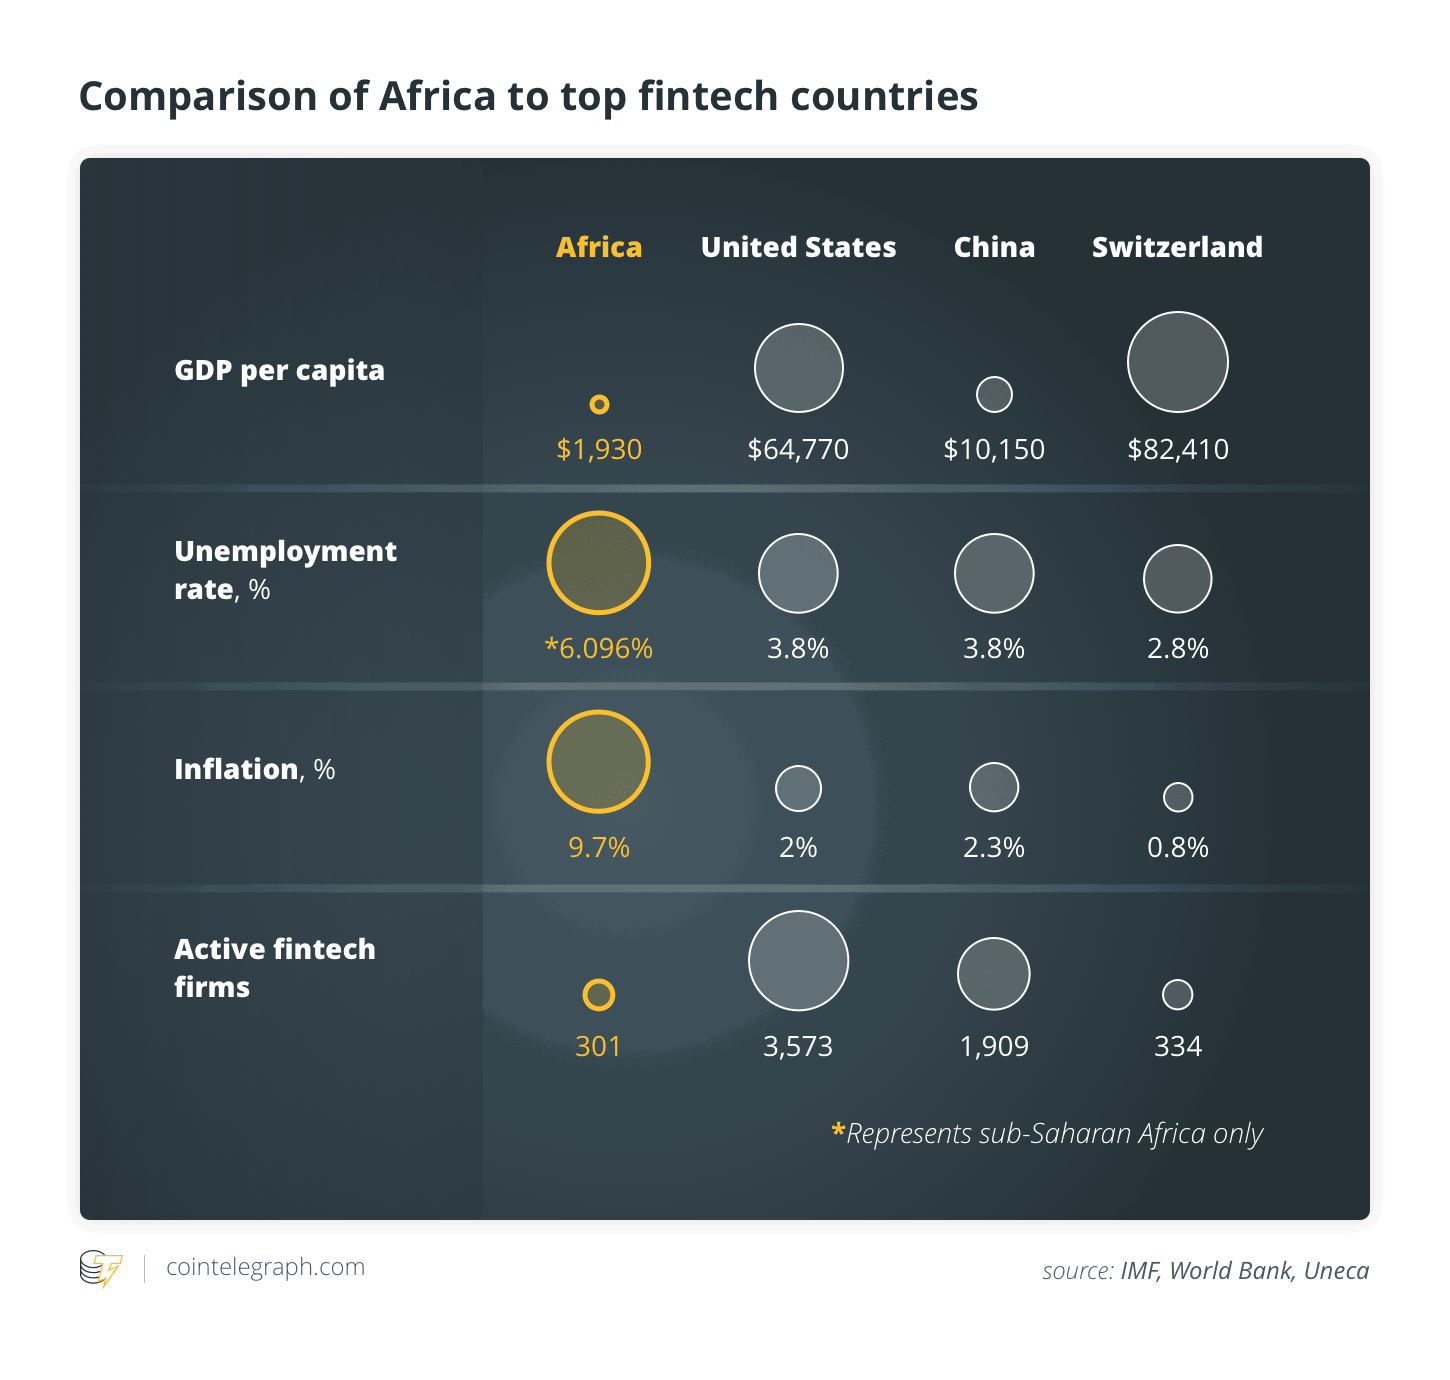 Comparison of Africa to top fintech countries